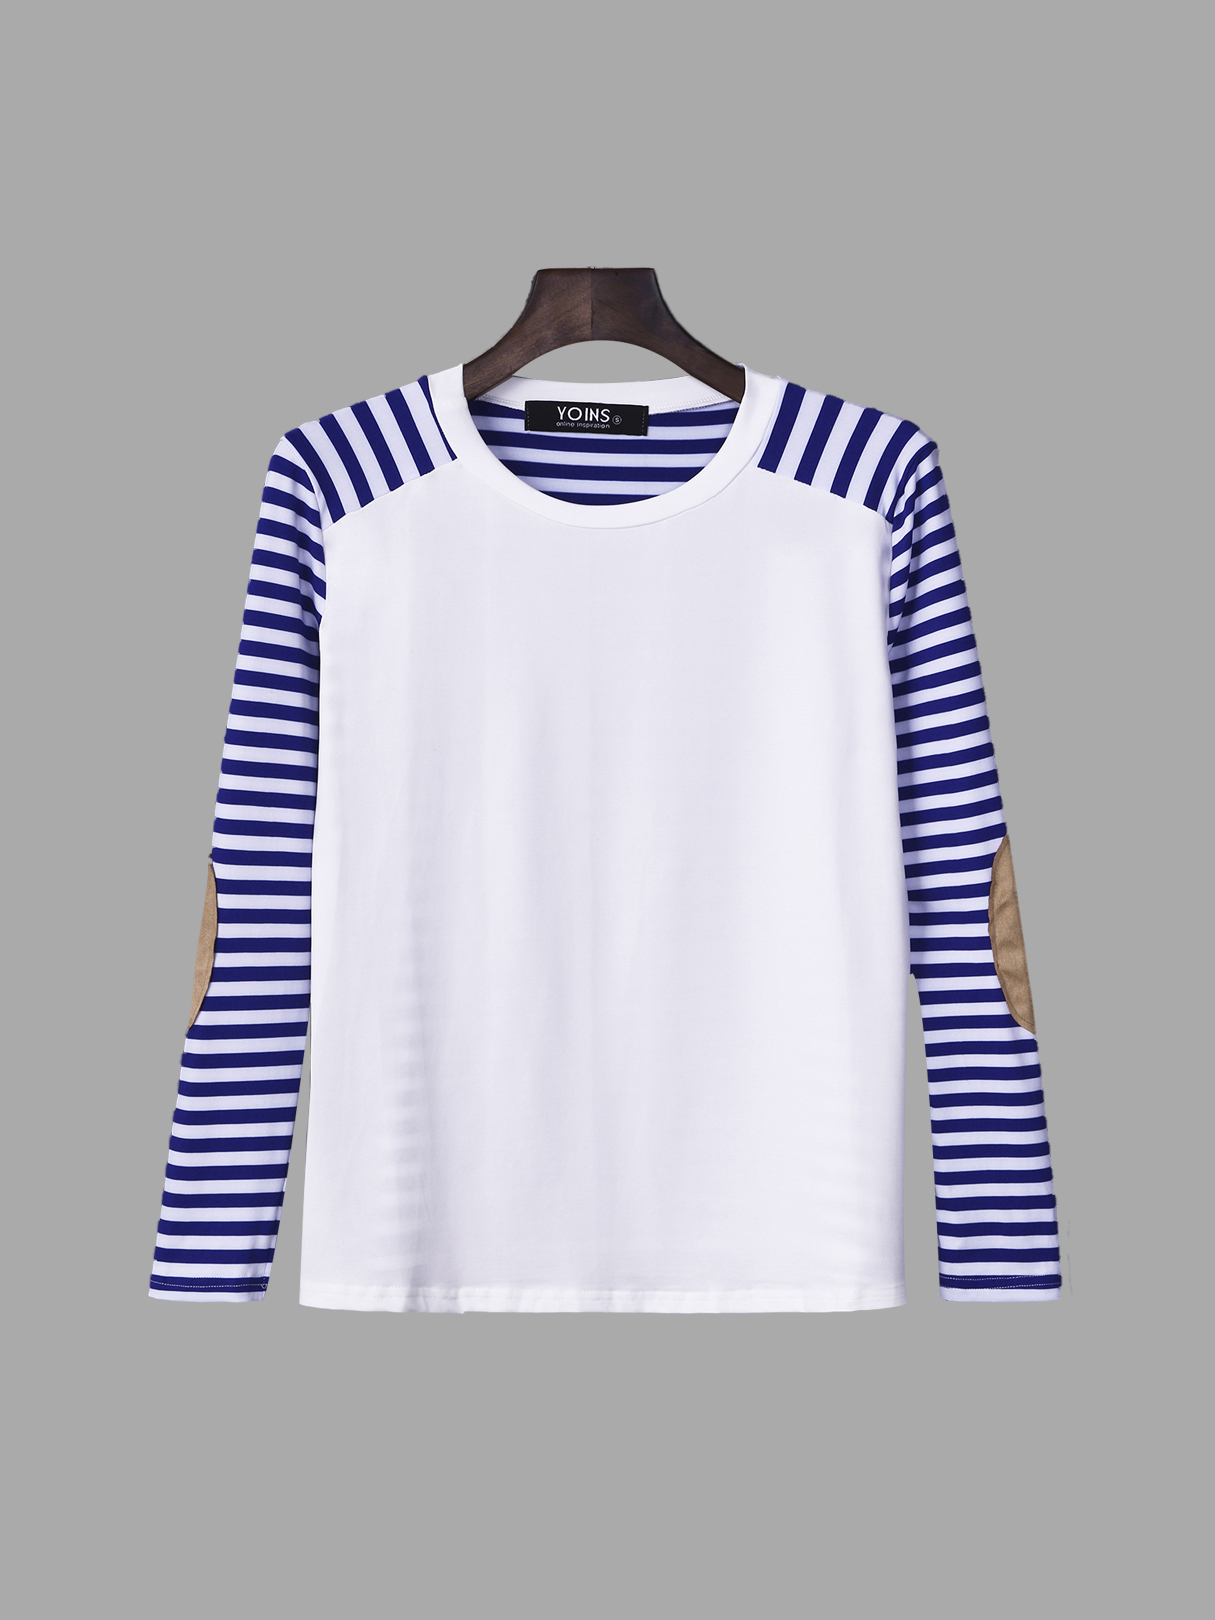 Stripe Pattern Patch Design Long Sleeve Casual T-shirt stripe pattern shirt in sweet design